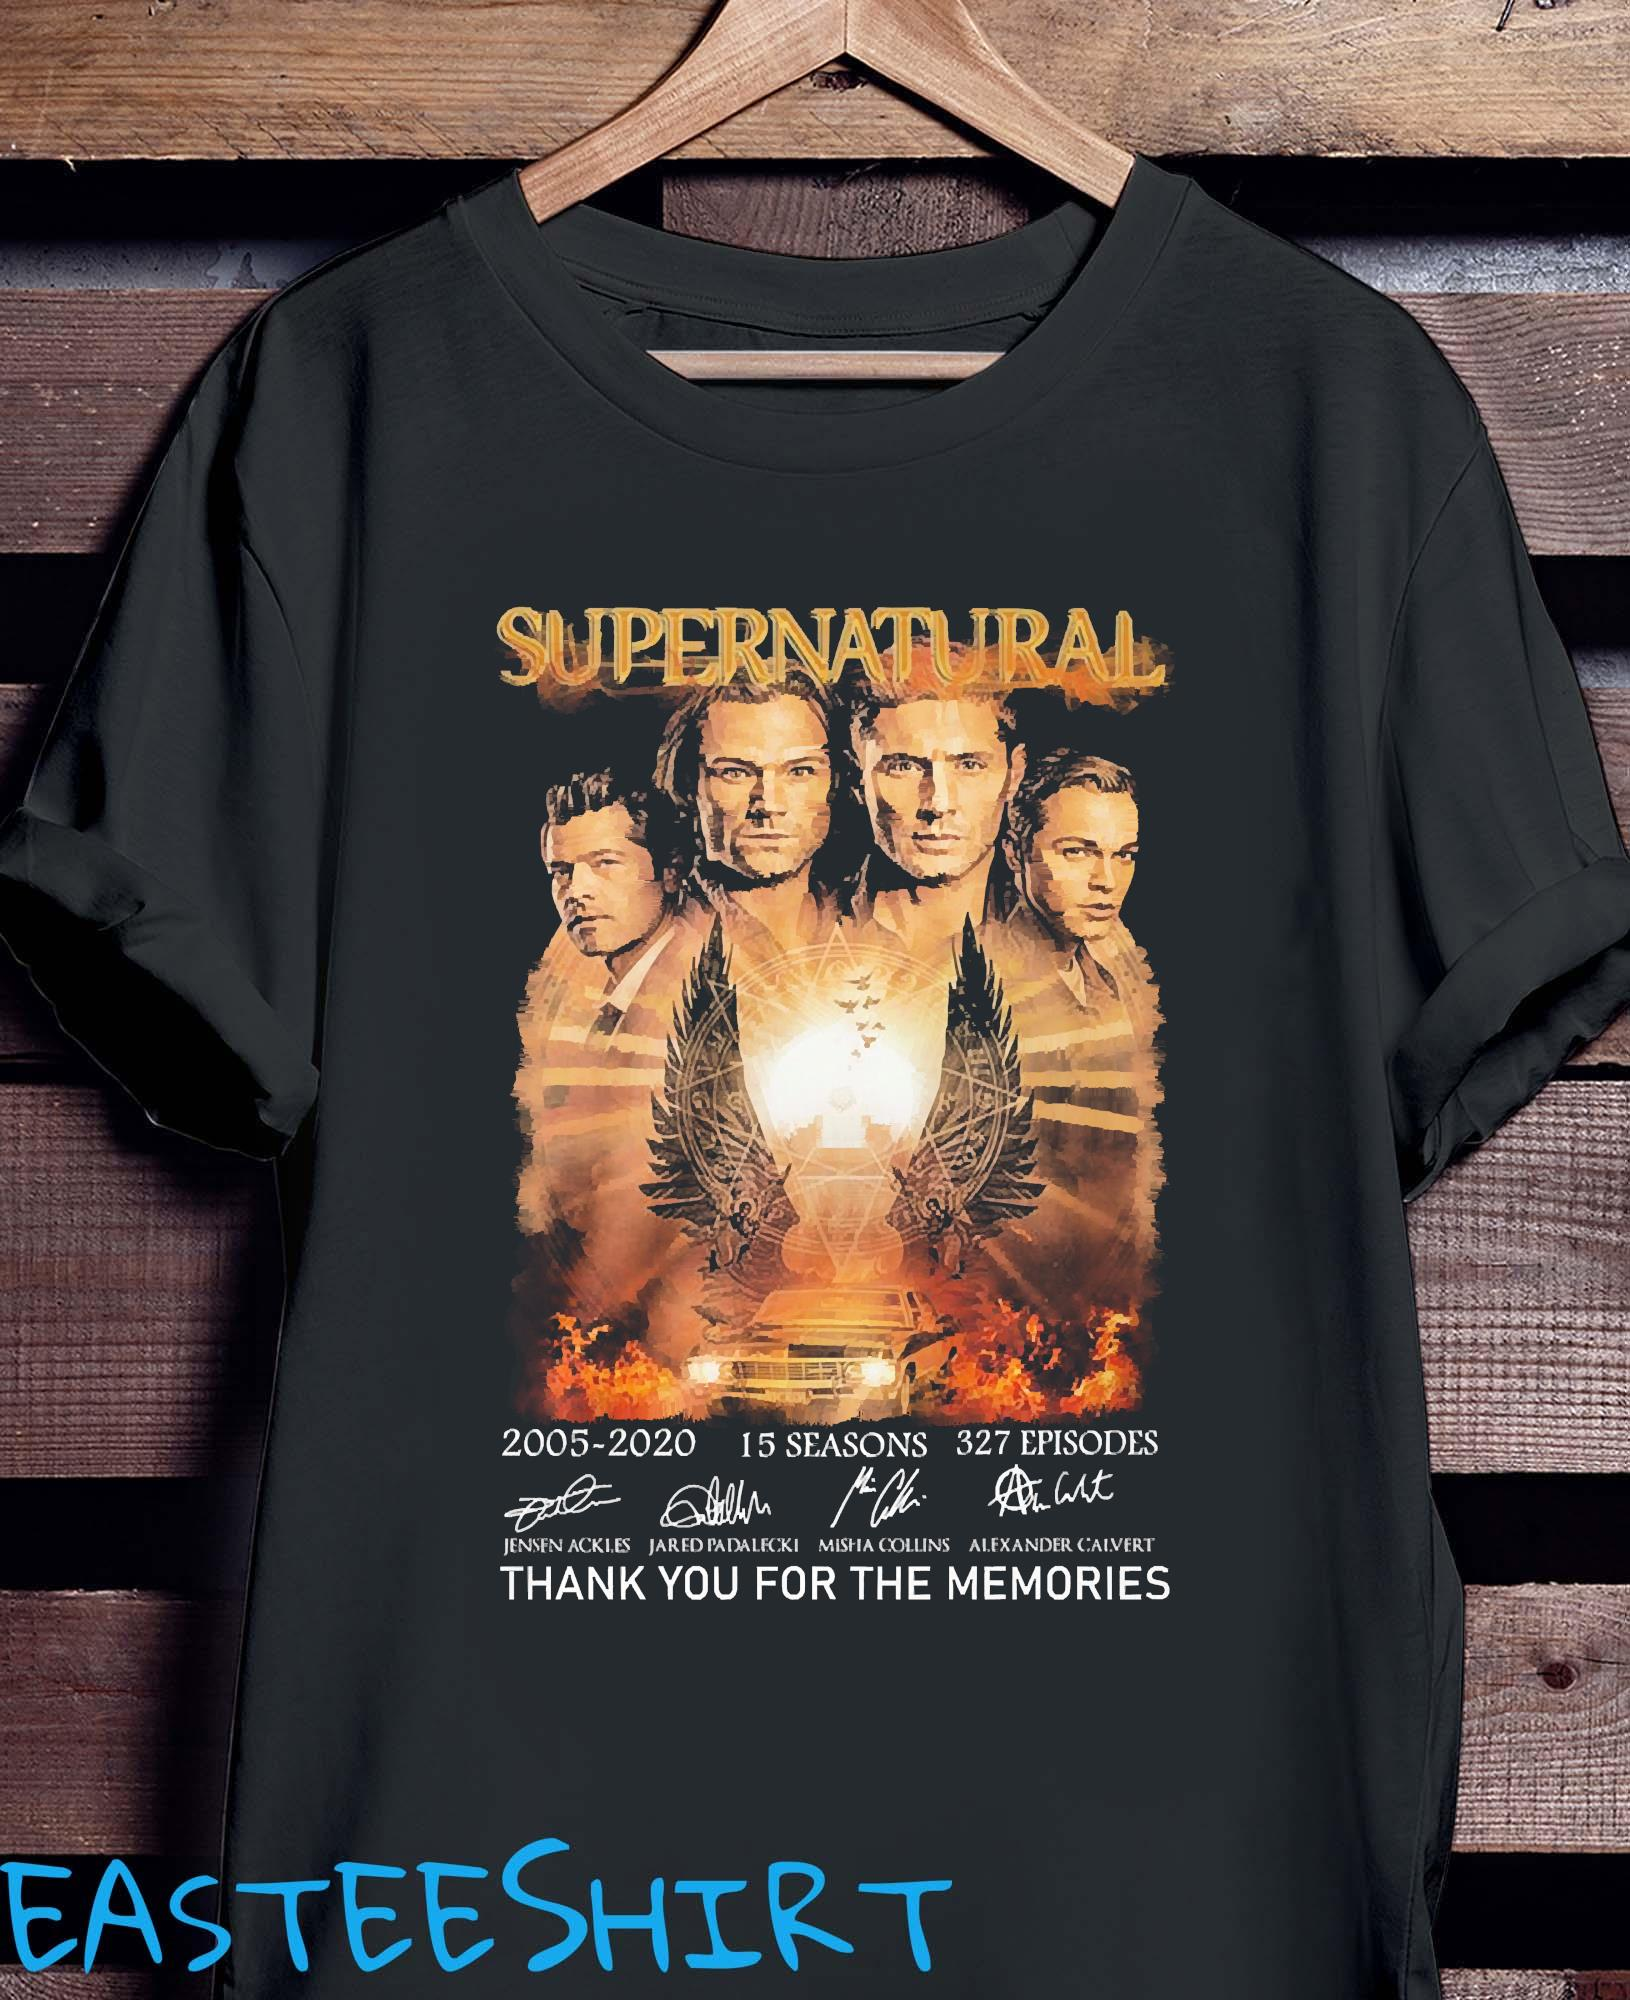 Supernatural 2005 2020 15 Seasons 327 Episodes Thank You For The Memories Signatures Shirt